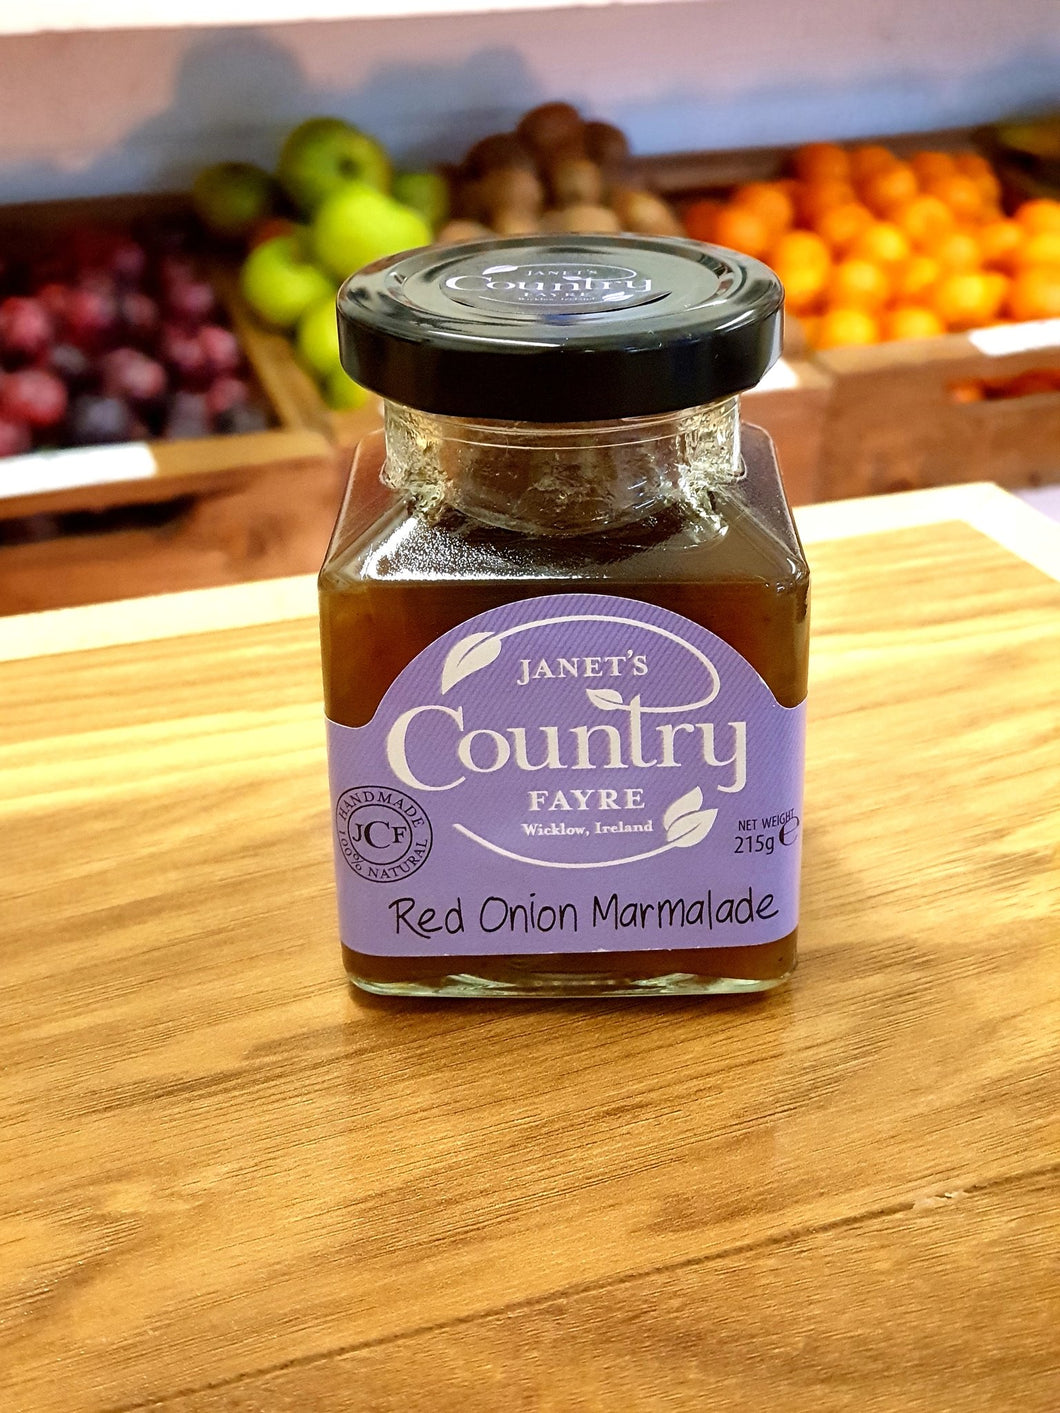 Janet's Country Fayre - Red Onion Marmalade 215g